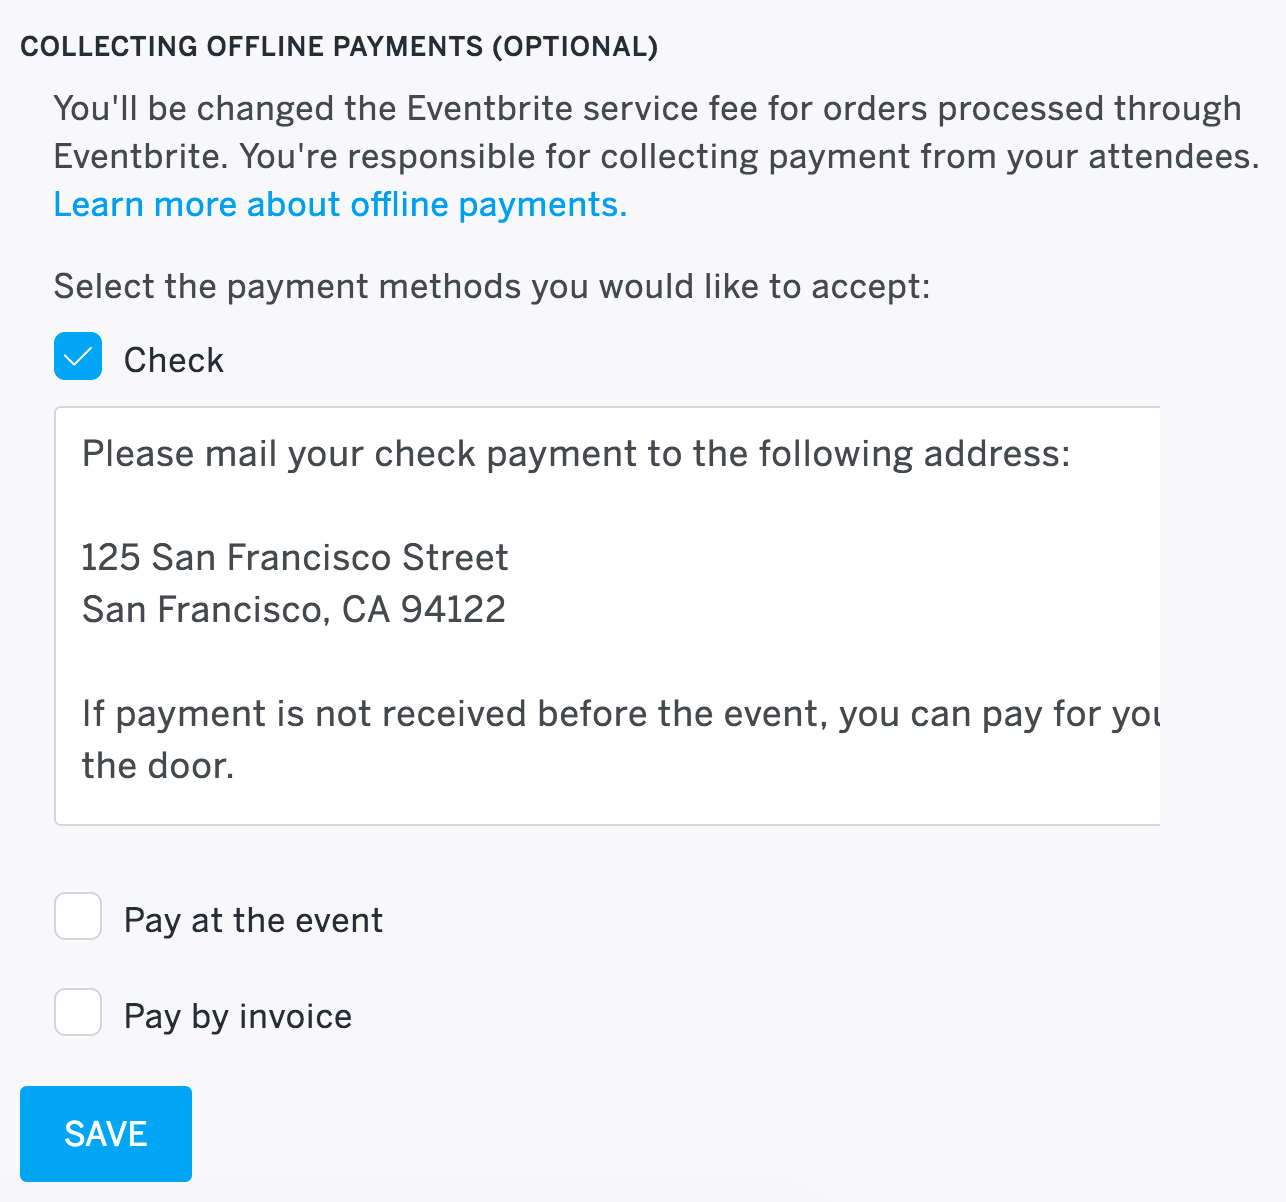 How To Accept Payments By Check Invoice Or At The Event With - Send invoice after payment received